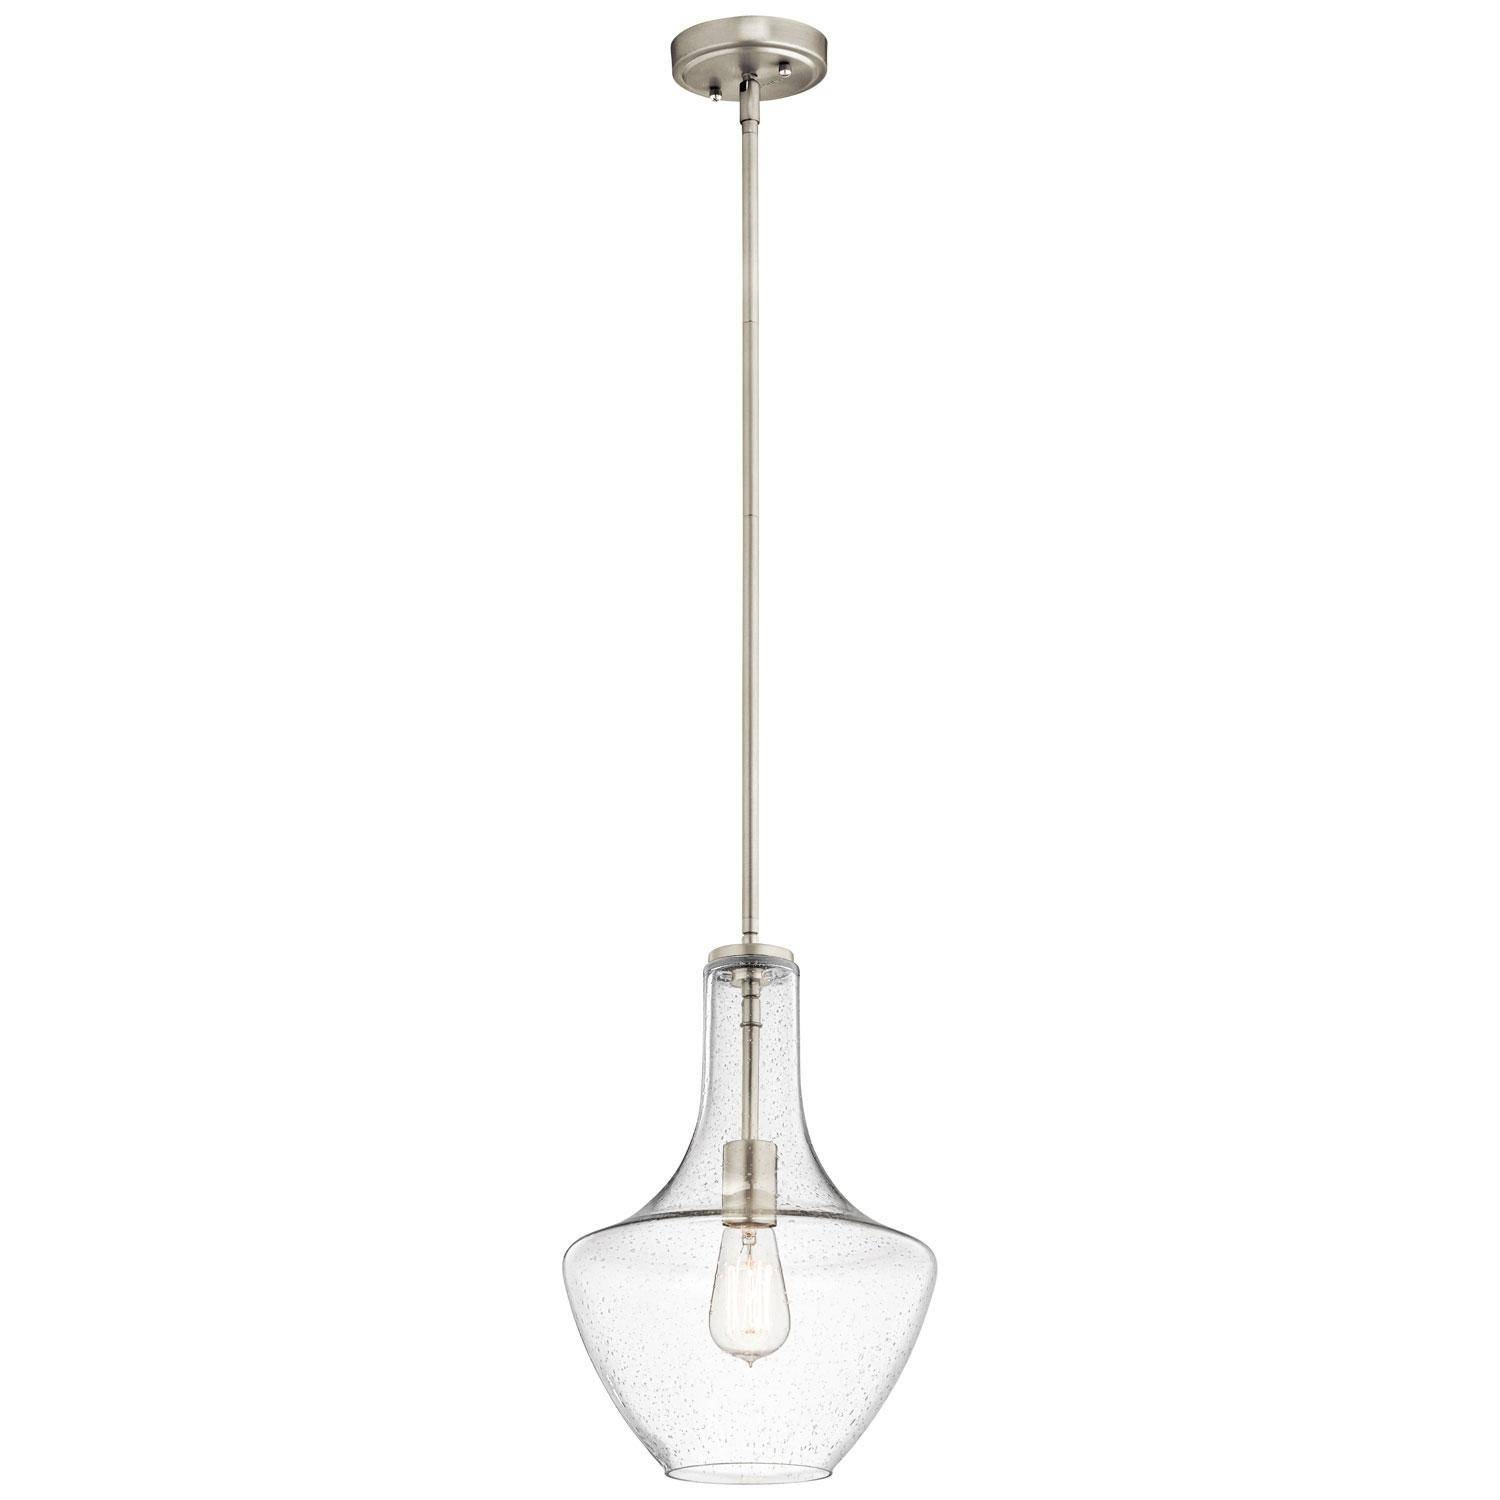 Schoolhouse Pendant Light Fixtures Lighting Bathroom Mercury Glass with regard to Schoolhouse Pendant Lights (Image 14 of 15)